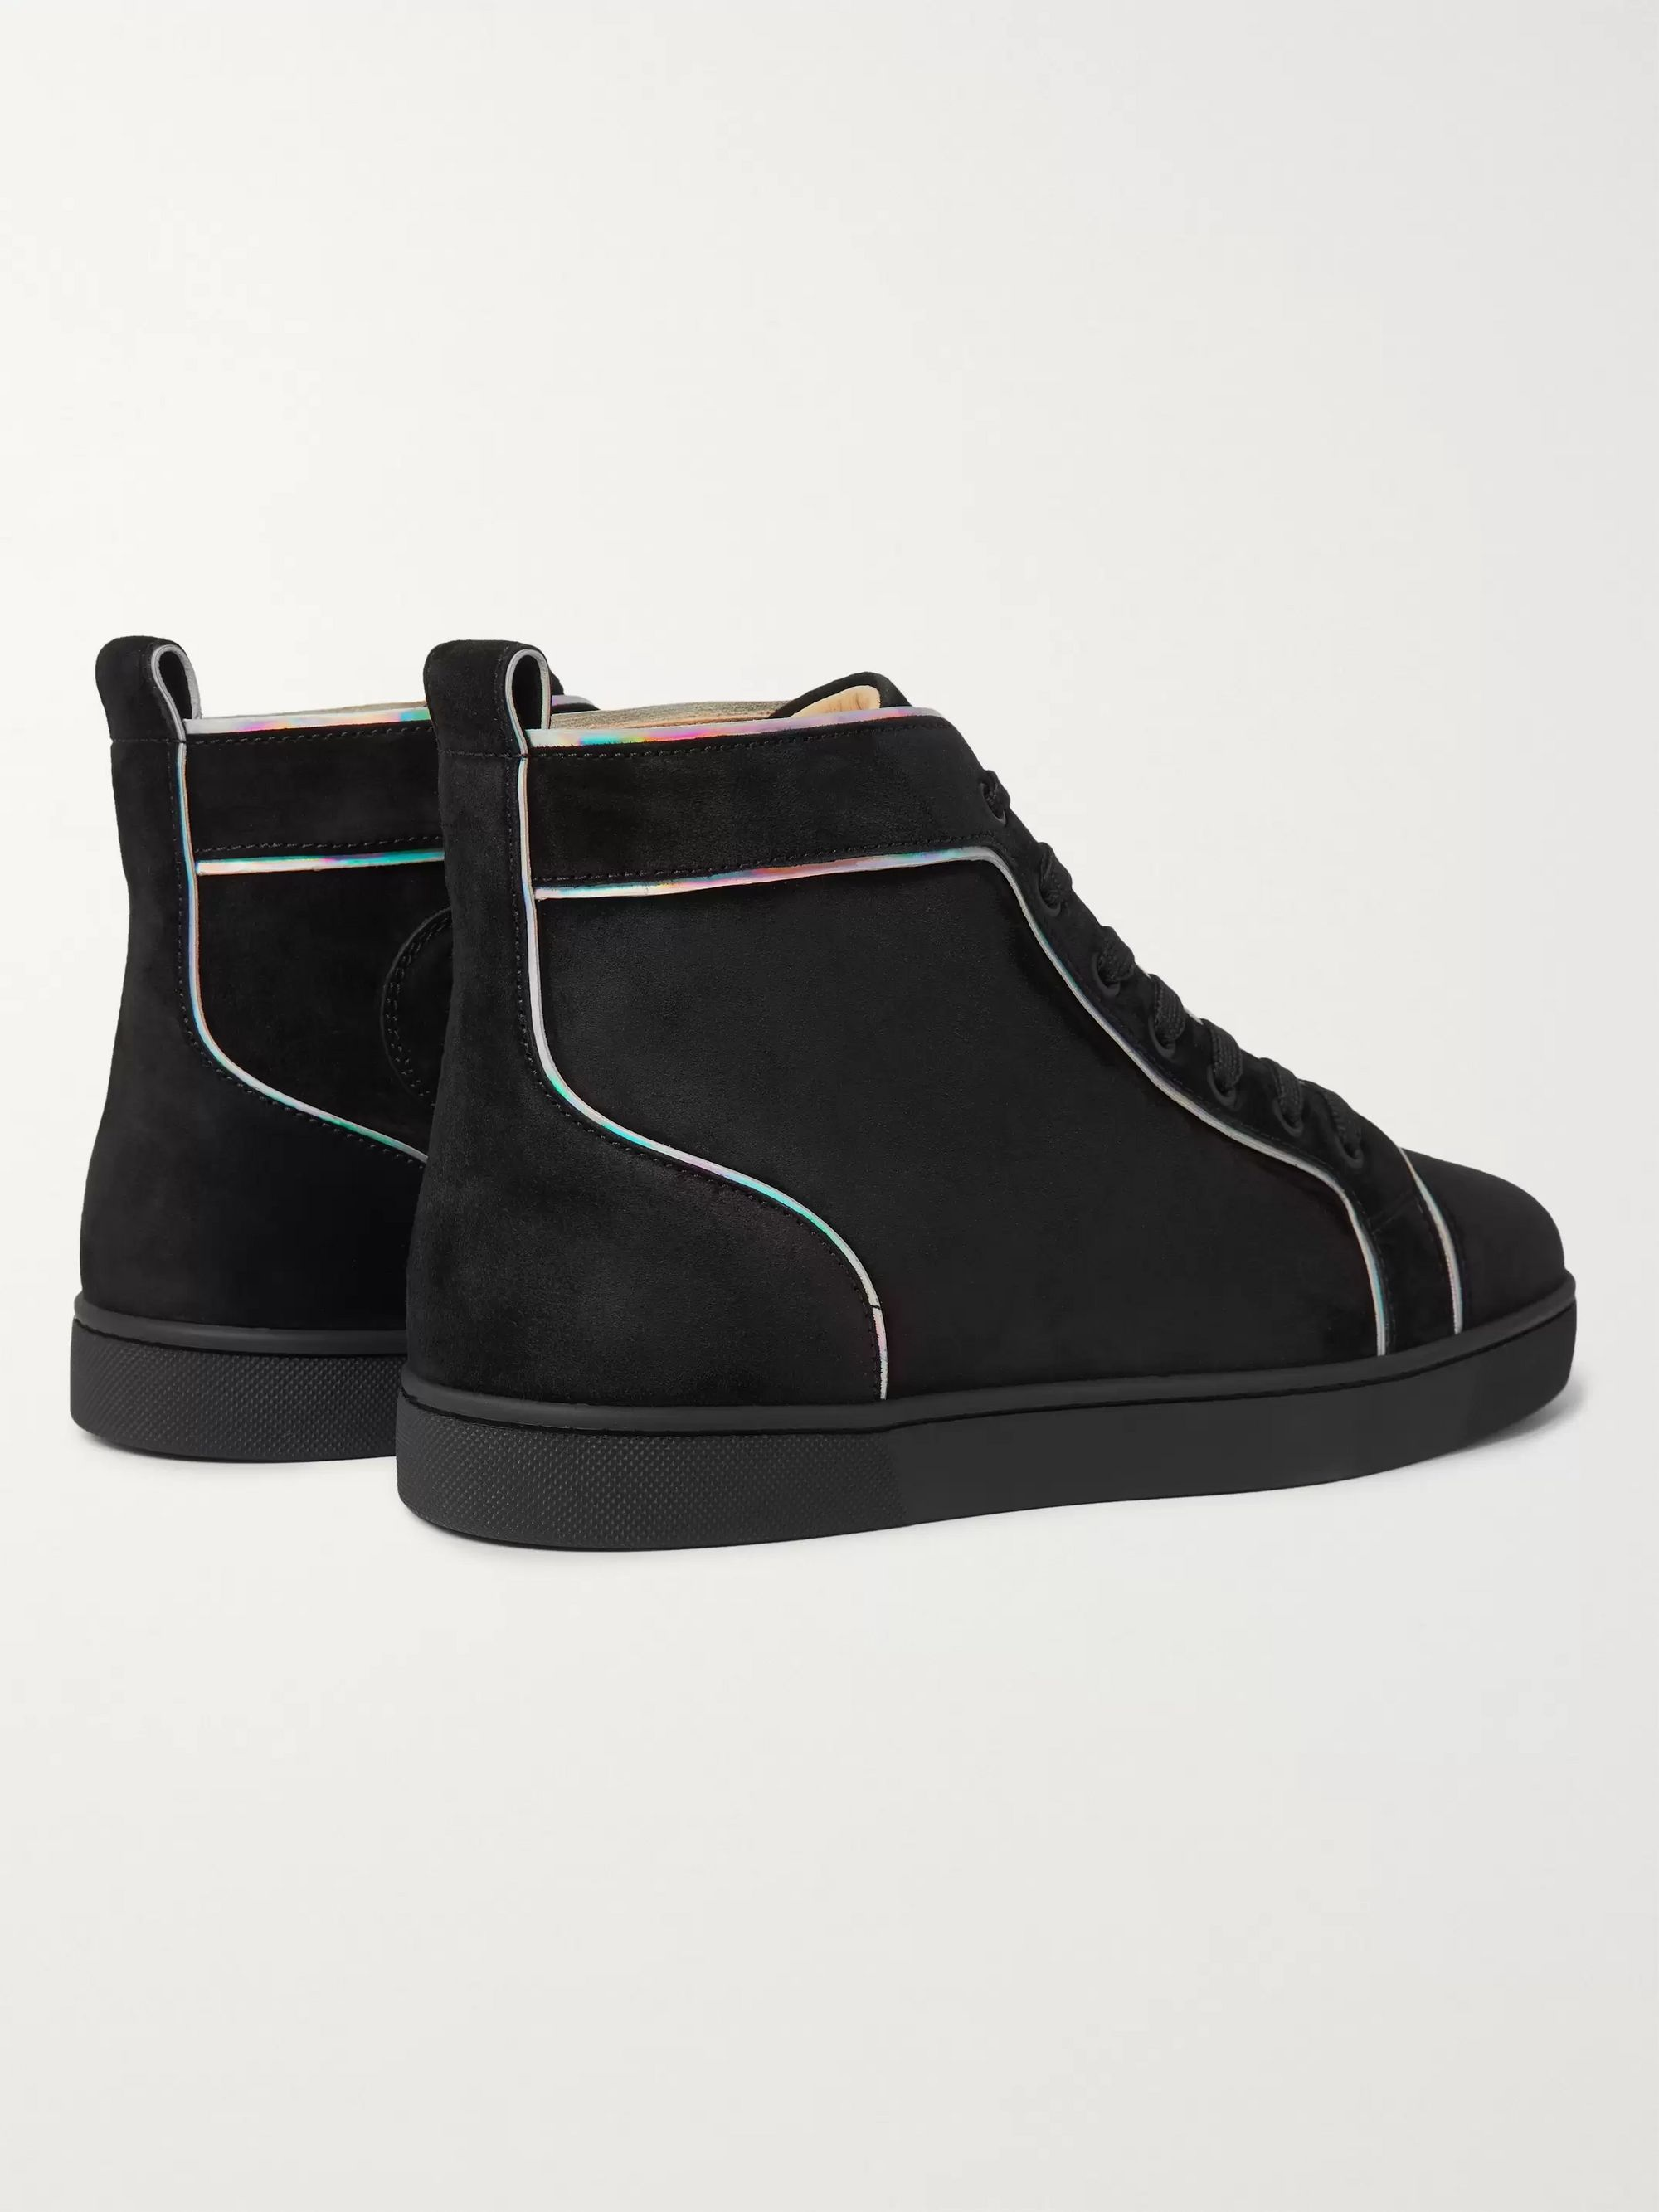 Christian Louboutin Louis Orlato Suede High-Top Sneakers